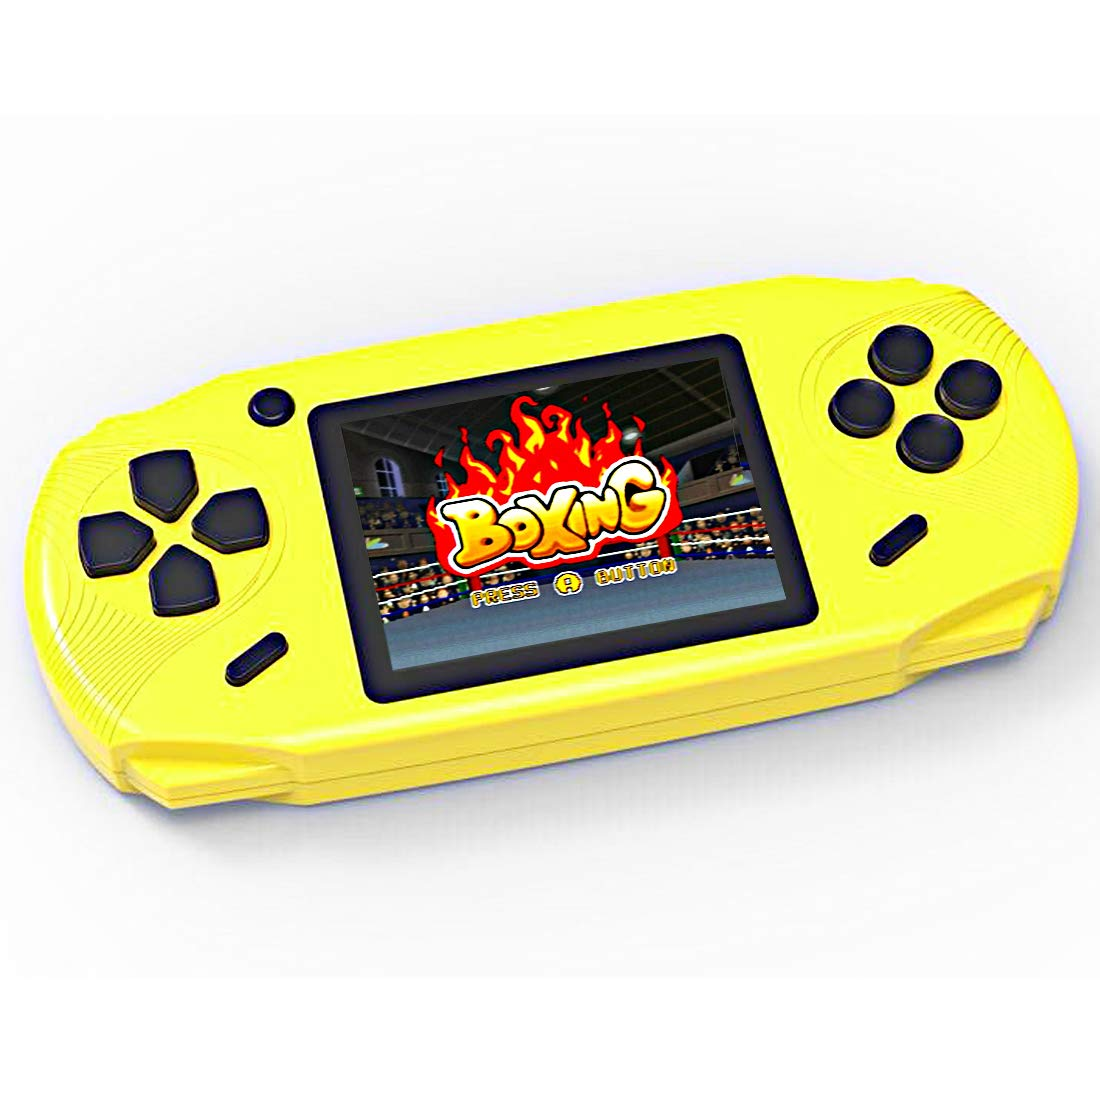 TEBIYOU Handheld Game Console, Built in 16 Bit100 HD Classic Video Games 3.0'' Large Screen Seniors Electronic Handheld Games Player Birthday Gift for Children Adults (Yellow)